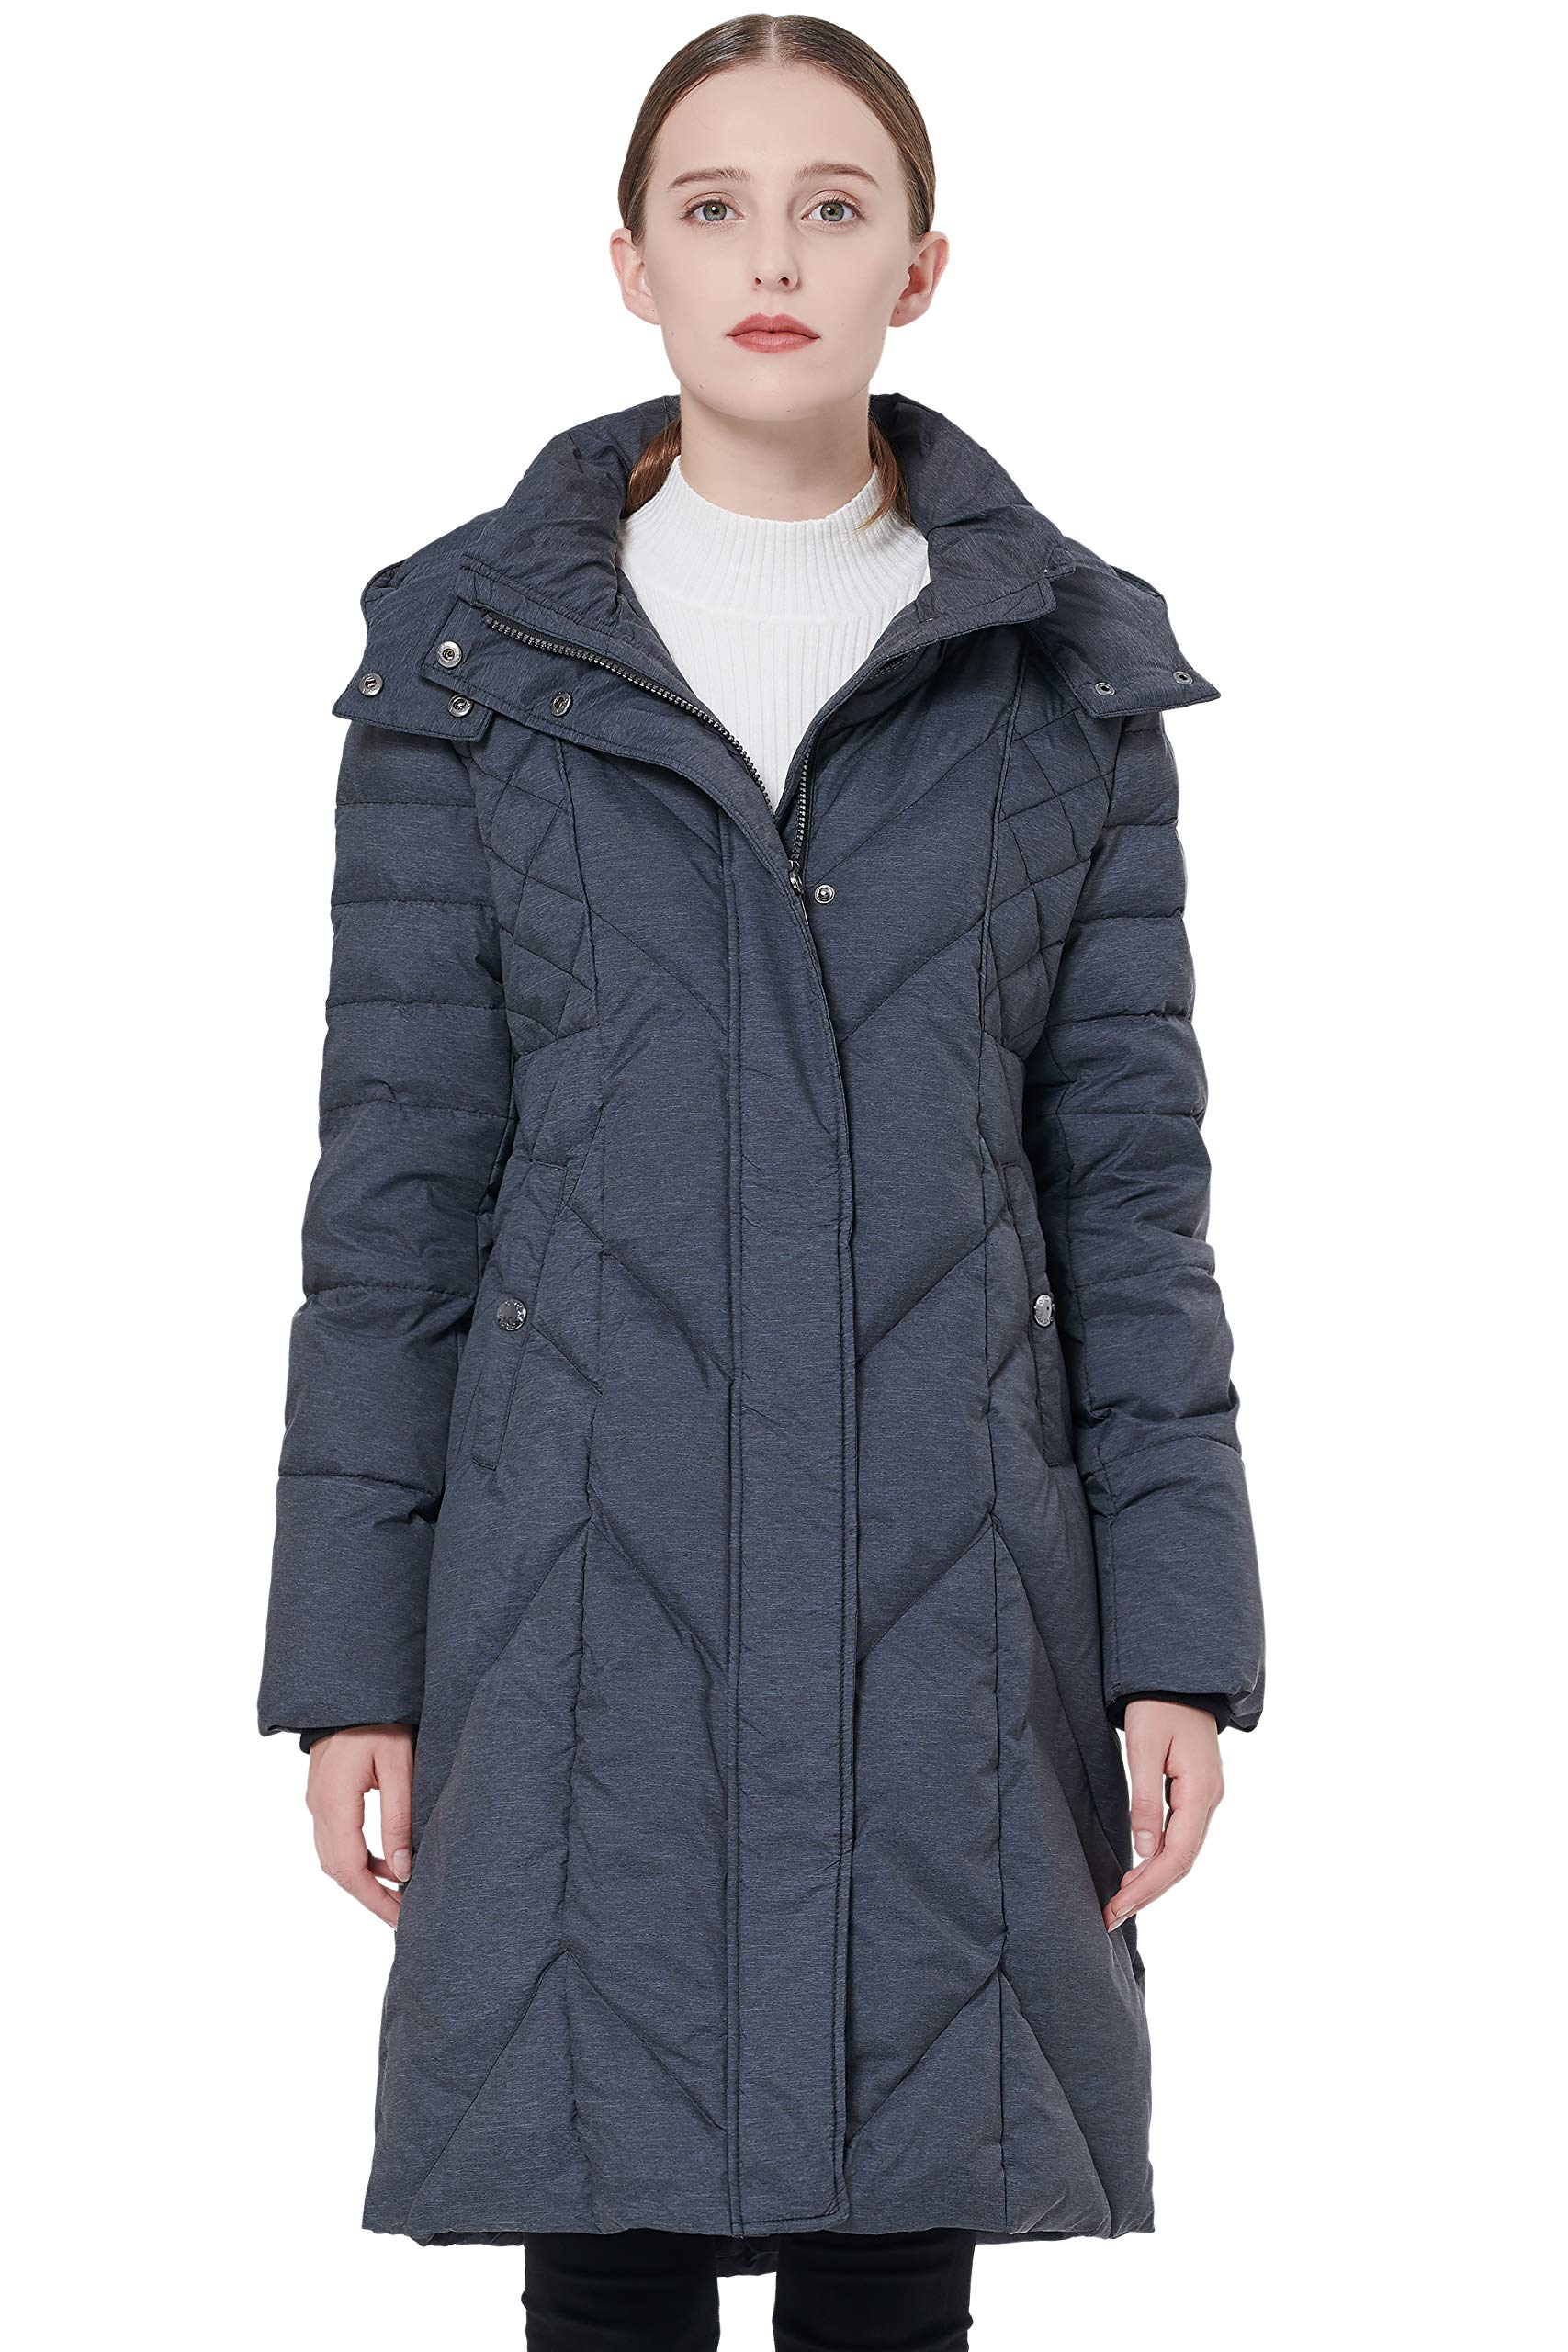 Orolay Women's Thickened Down Jacket with Hood